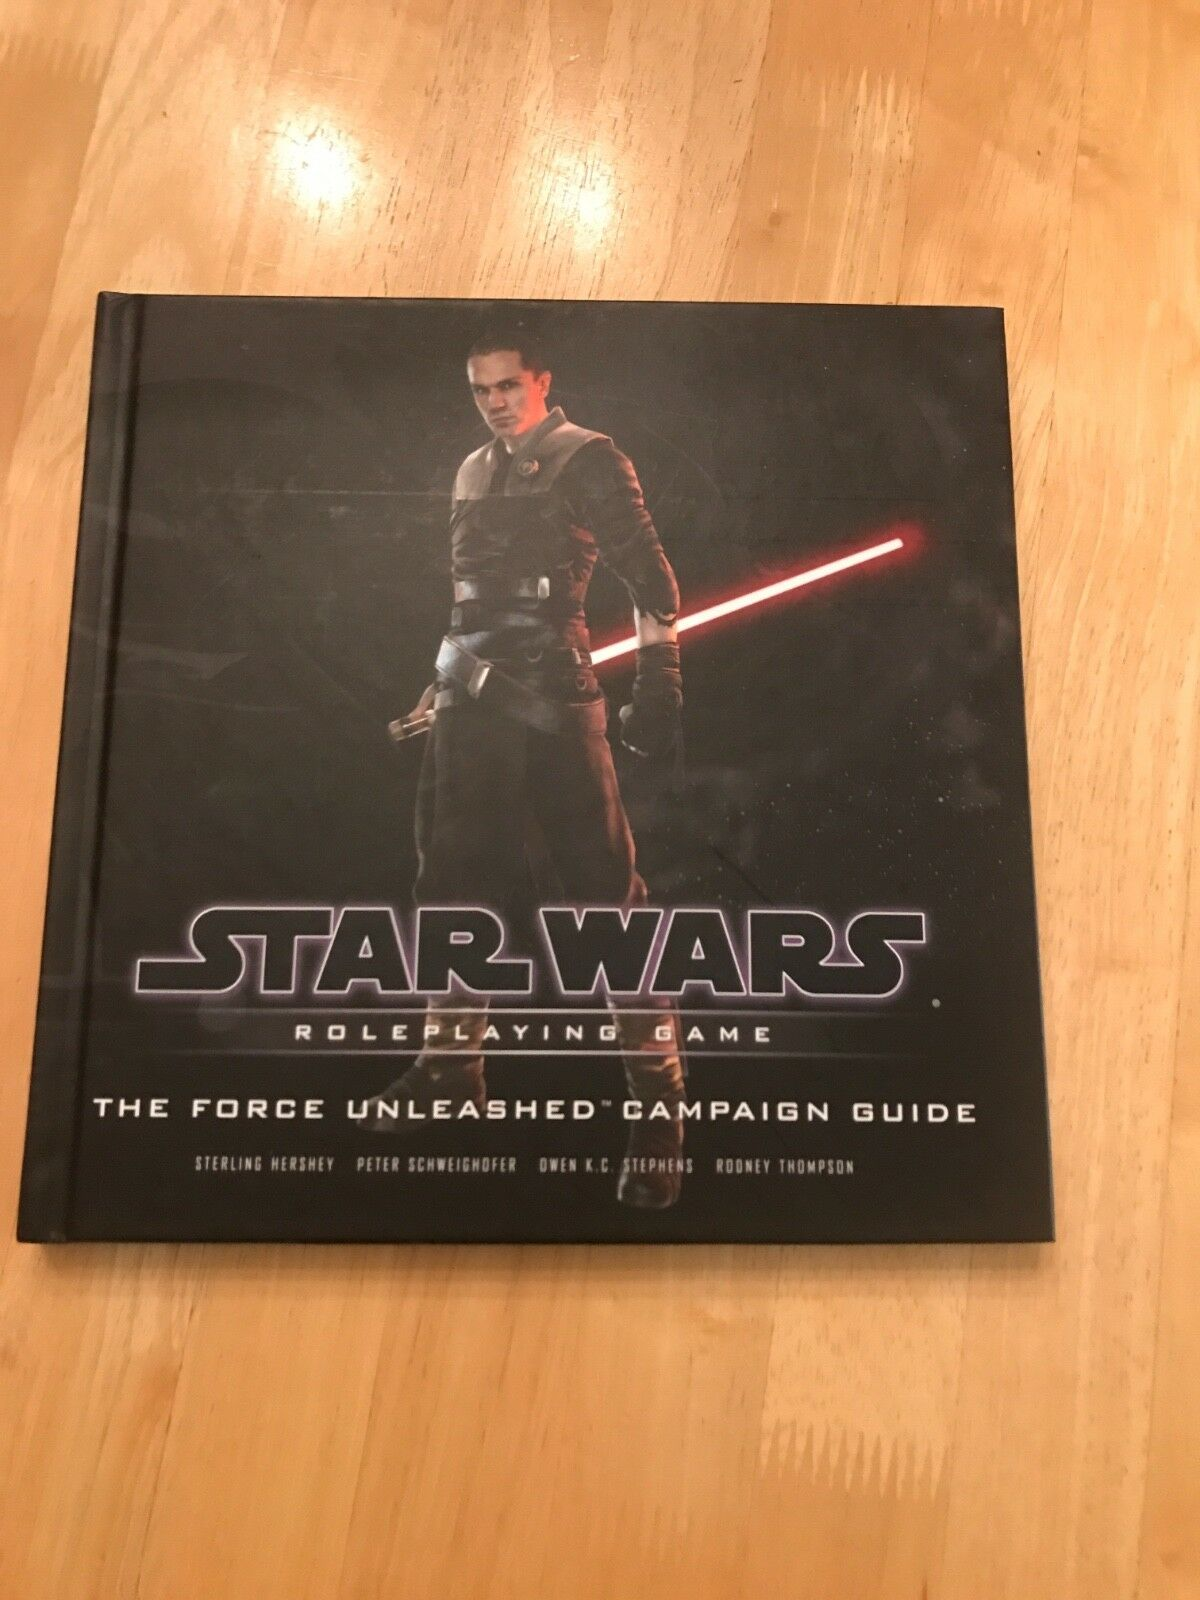 Star Wars Roleplaying Game The Force Unleashed Campaign Guide Book NEW Hardcover